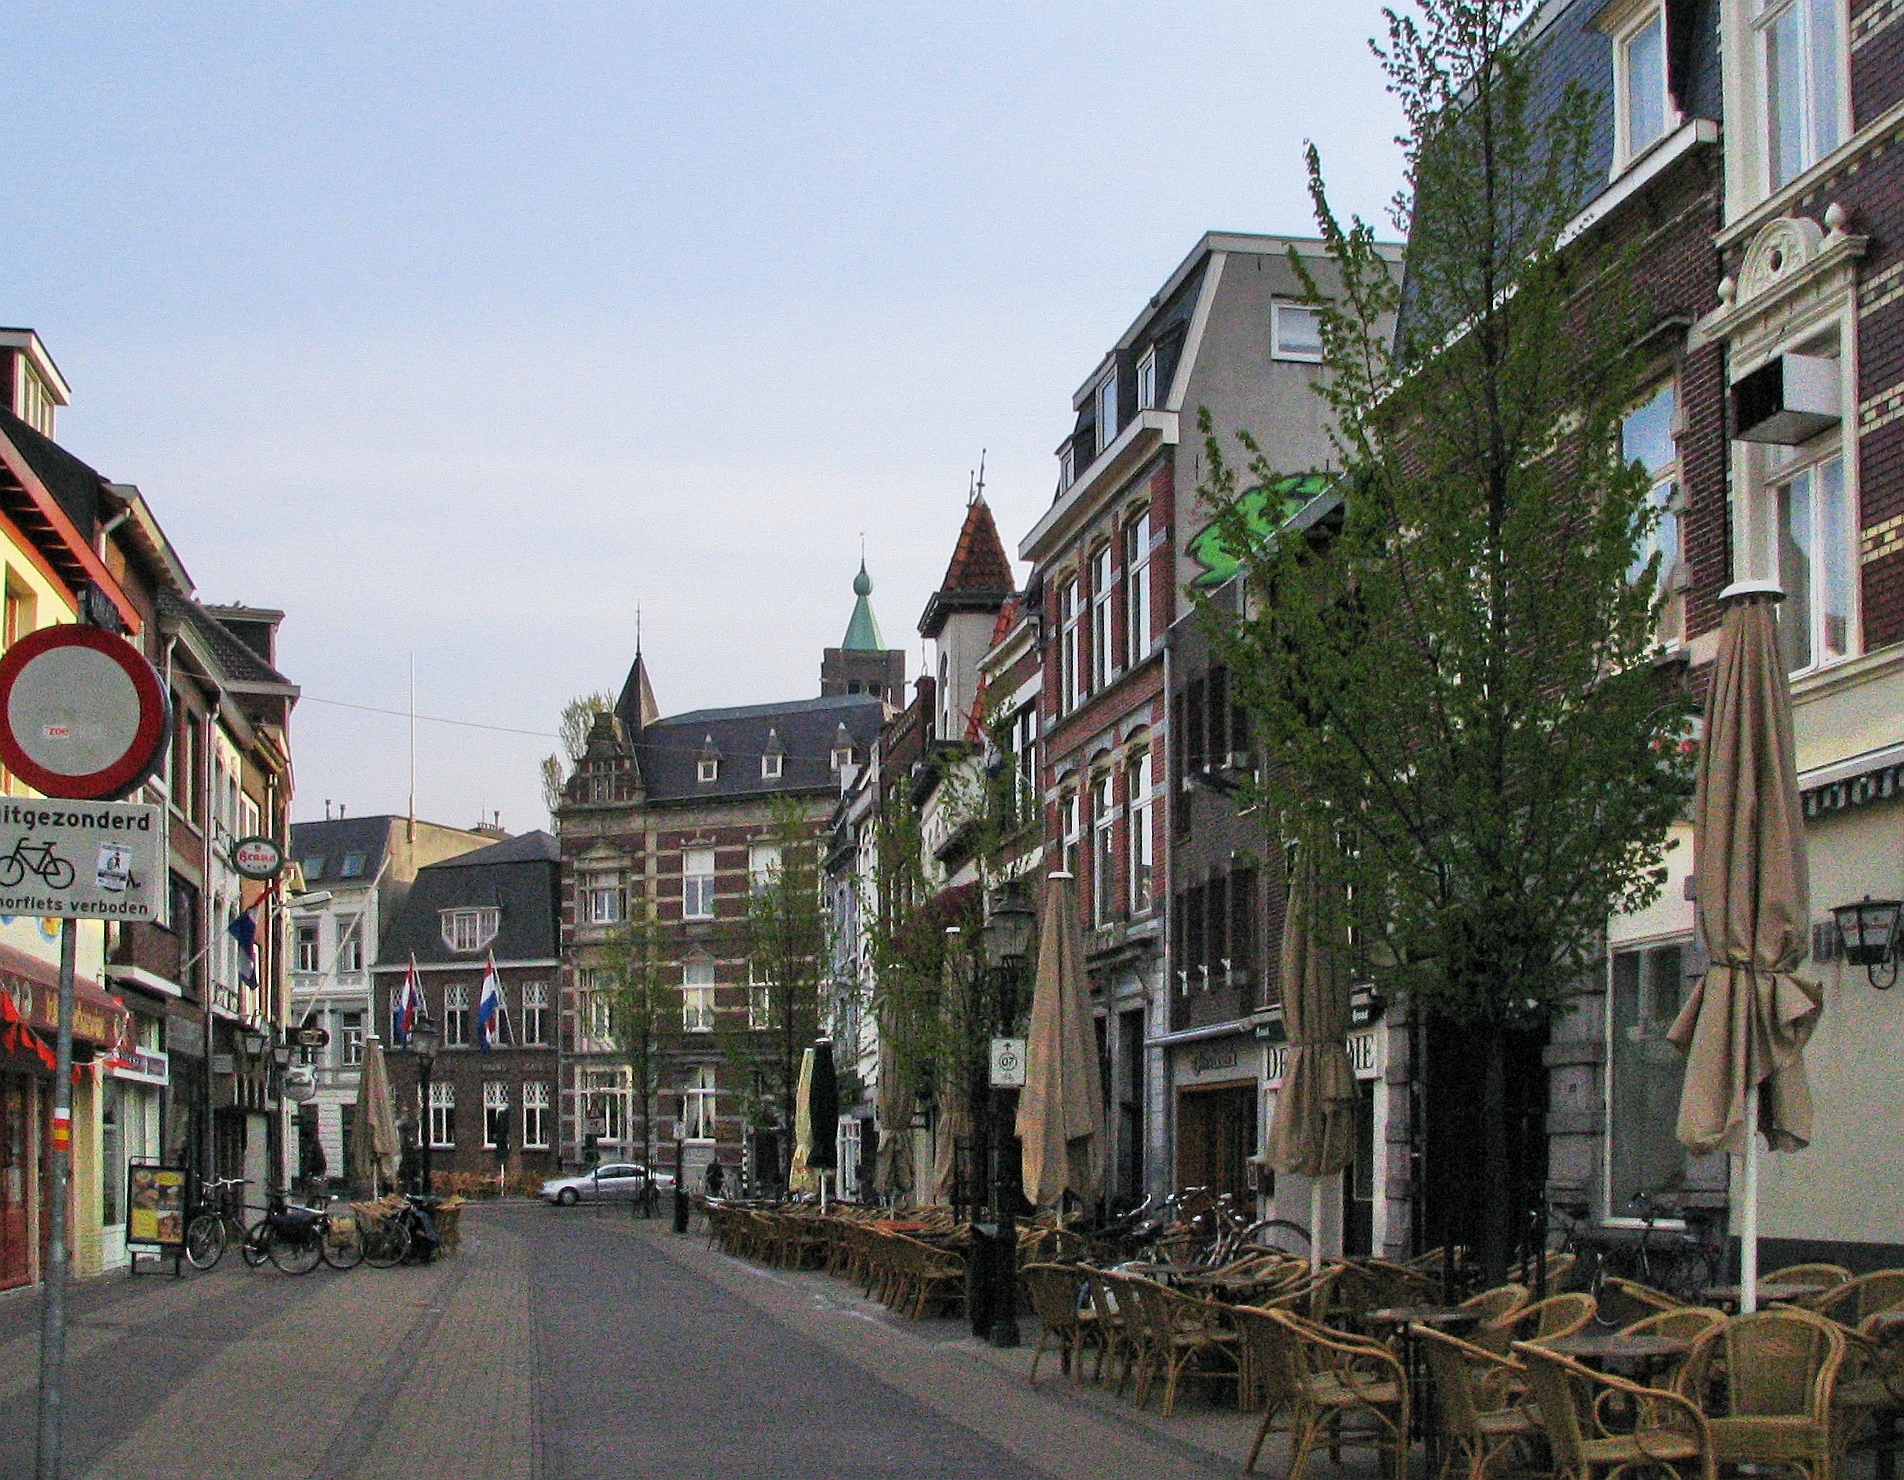 Venlo Netherlands  city photo : De Parade, Venlo Limburg, NL IMG 4869 Wikimedia Commons